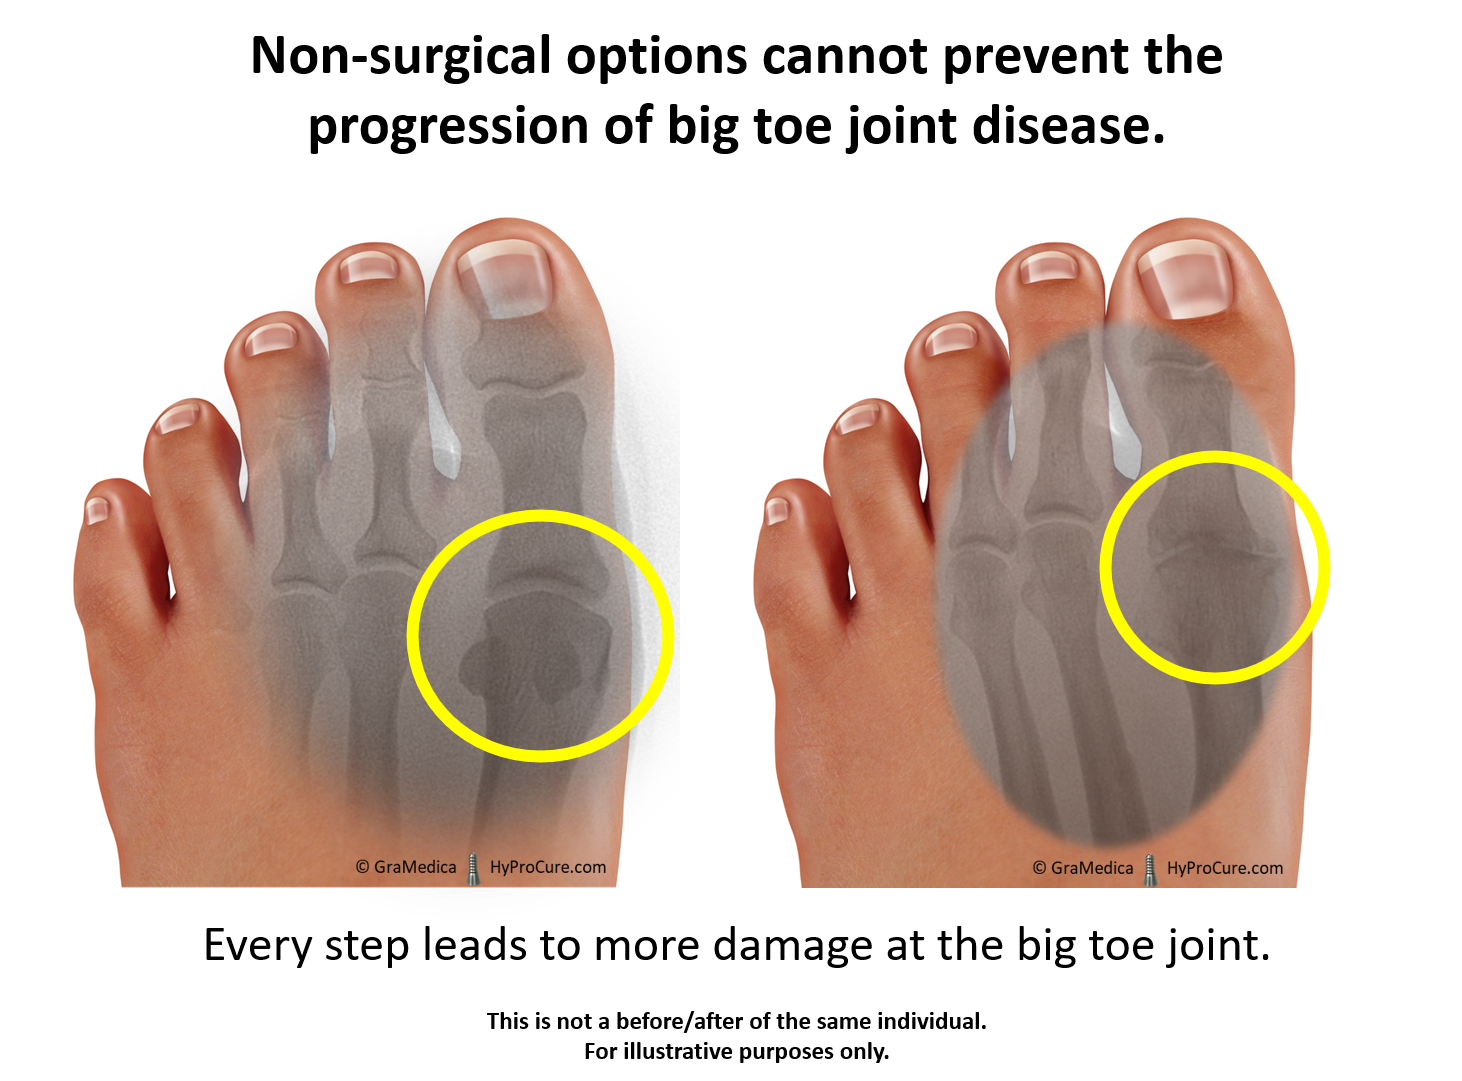 Non surgical options cannot prevent the progression of big toe joint disease